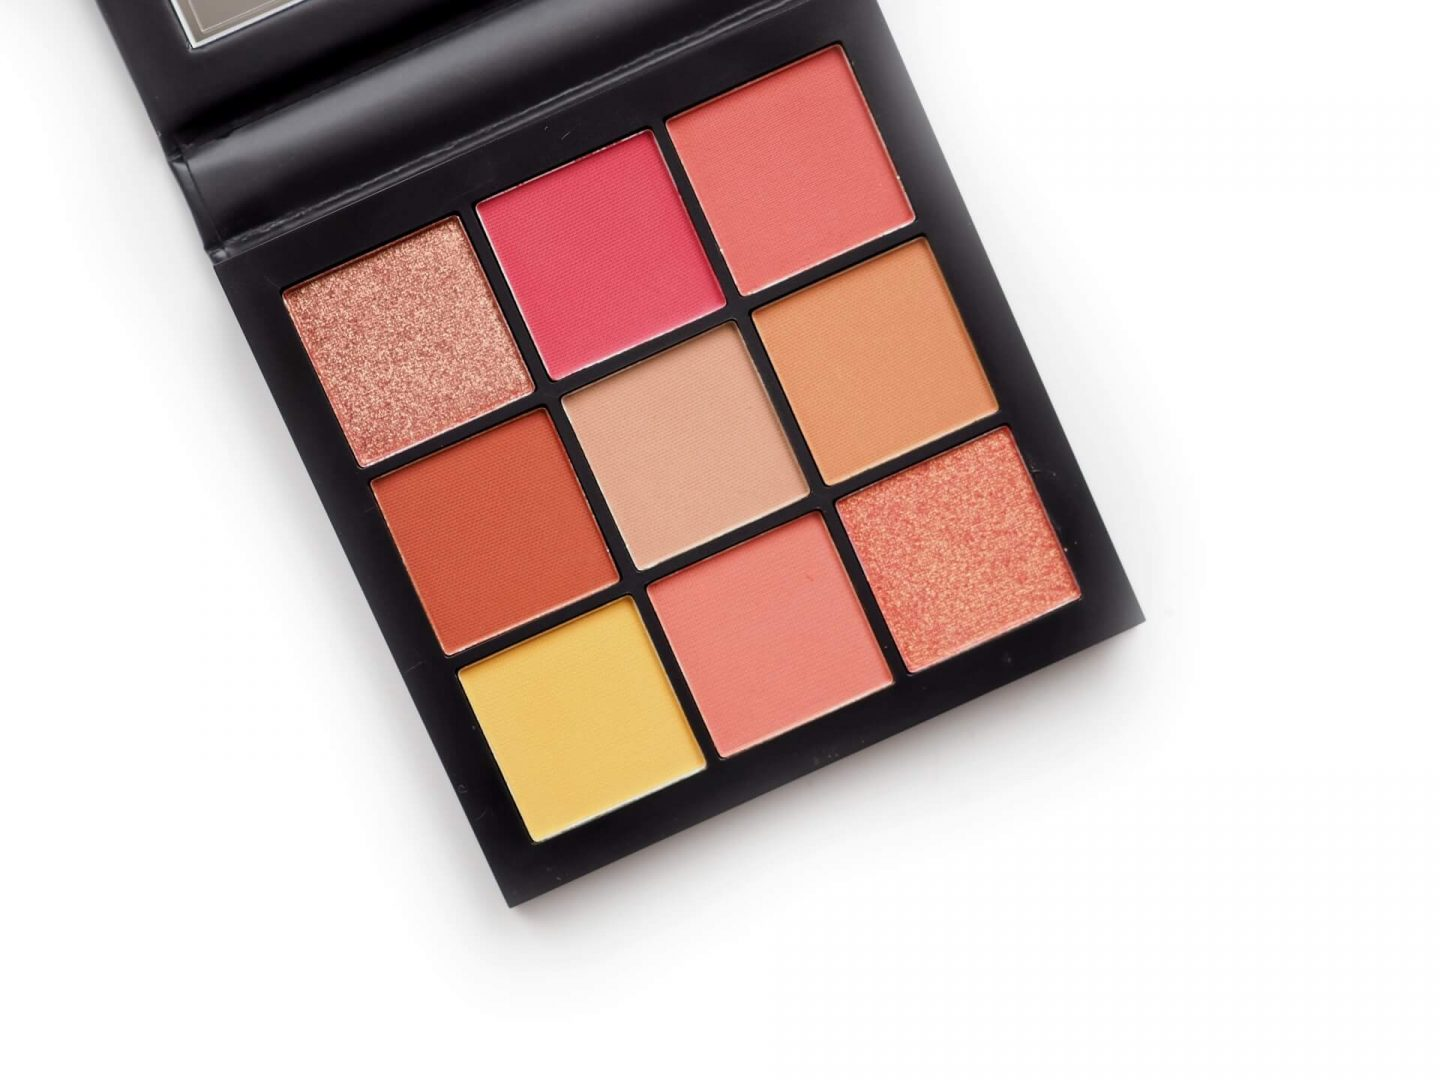 Huda Coral Obsessions PaletteHuda Coral Obsessions Palette